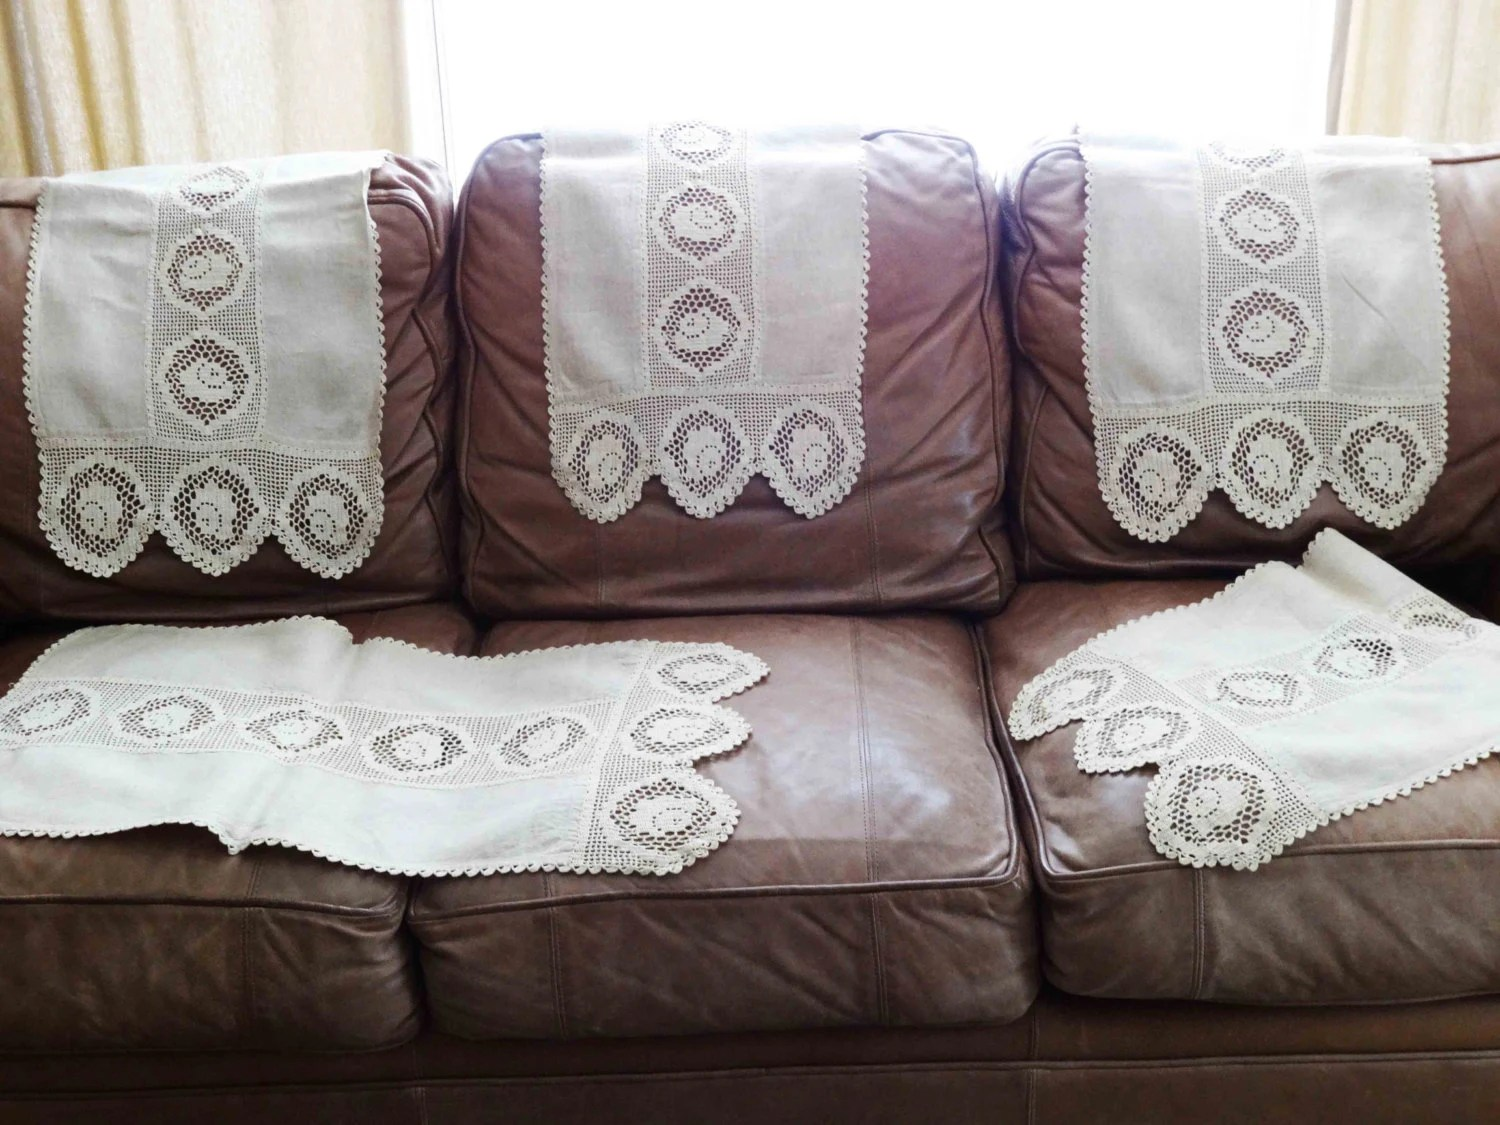 chair covers vintage baby roomba linen and crochet lace back or table